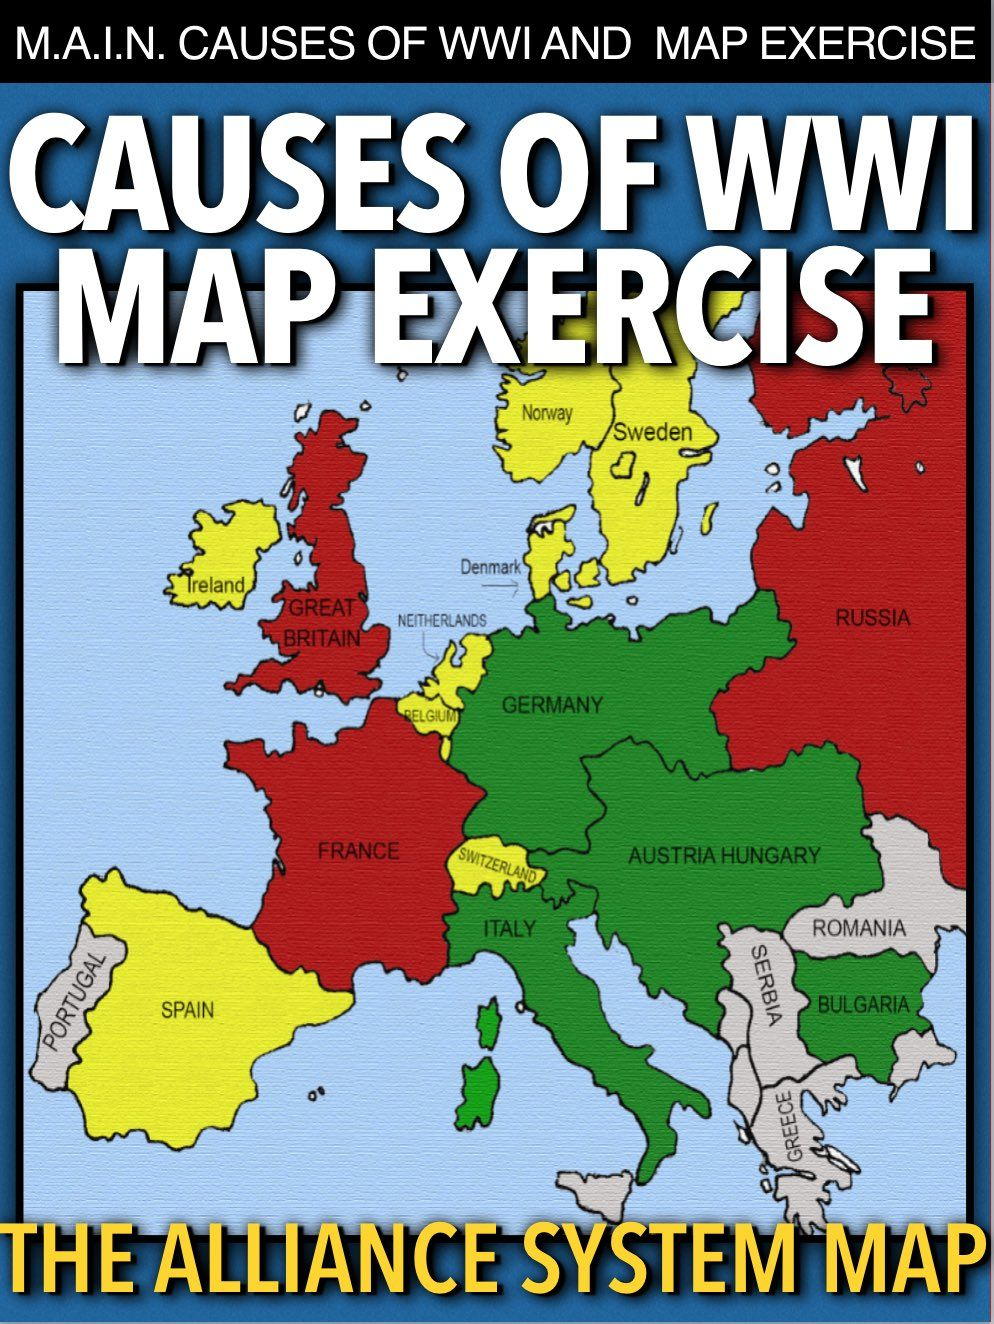 world war i map activity main causes ww1 other student and world war i map activity main causes takes students to europe 1914 to discuss the